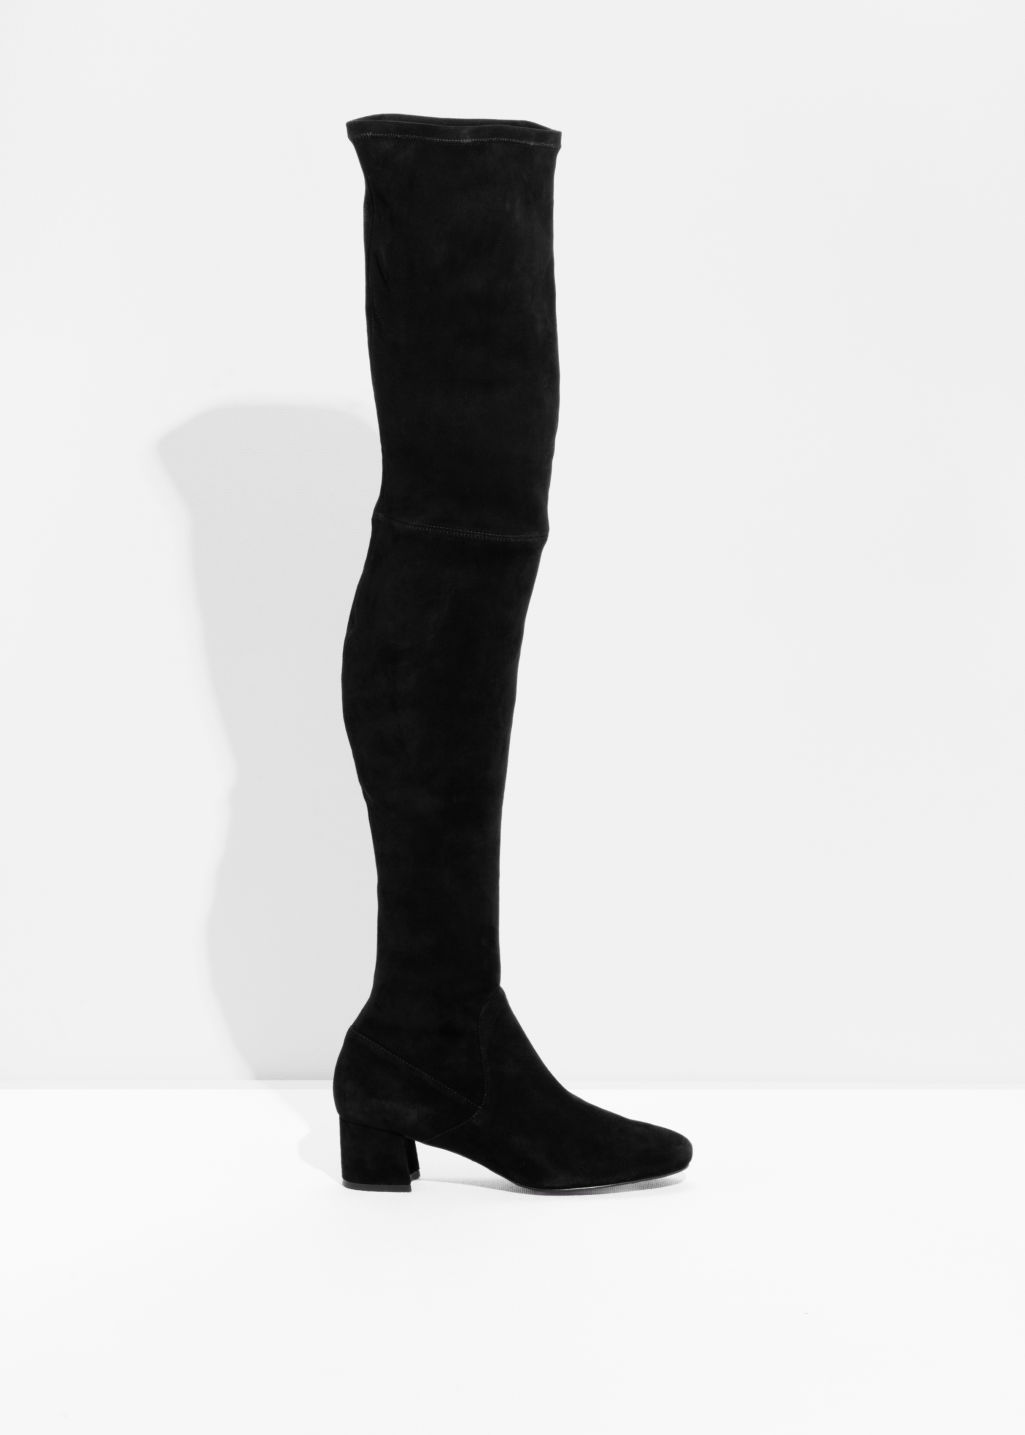 f28f8c5a69e Slim Suede Thigh High Boots - Black - Knee high boots -   Other Stories